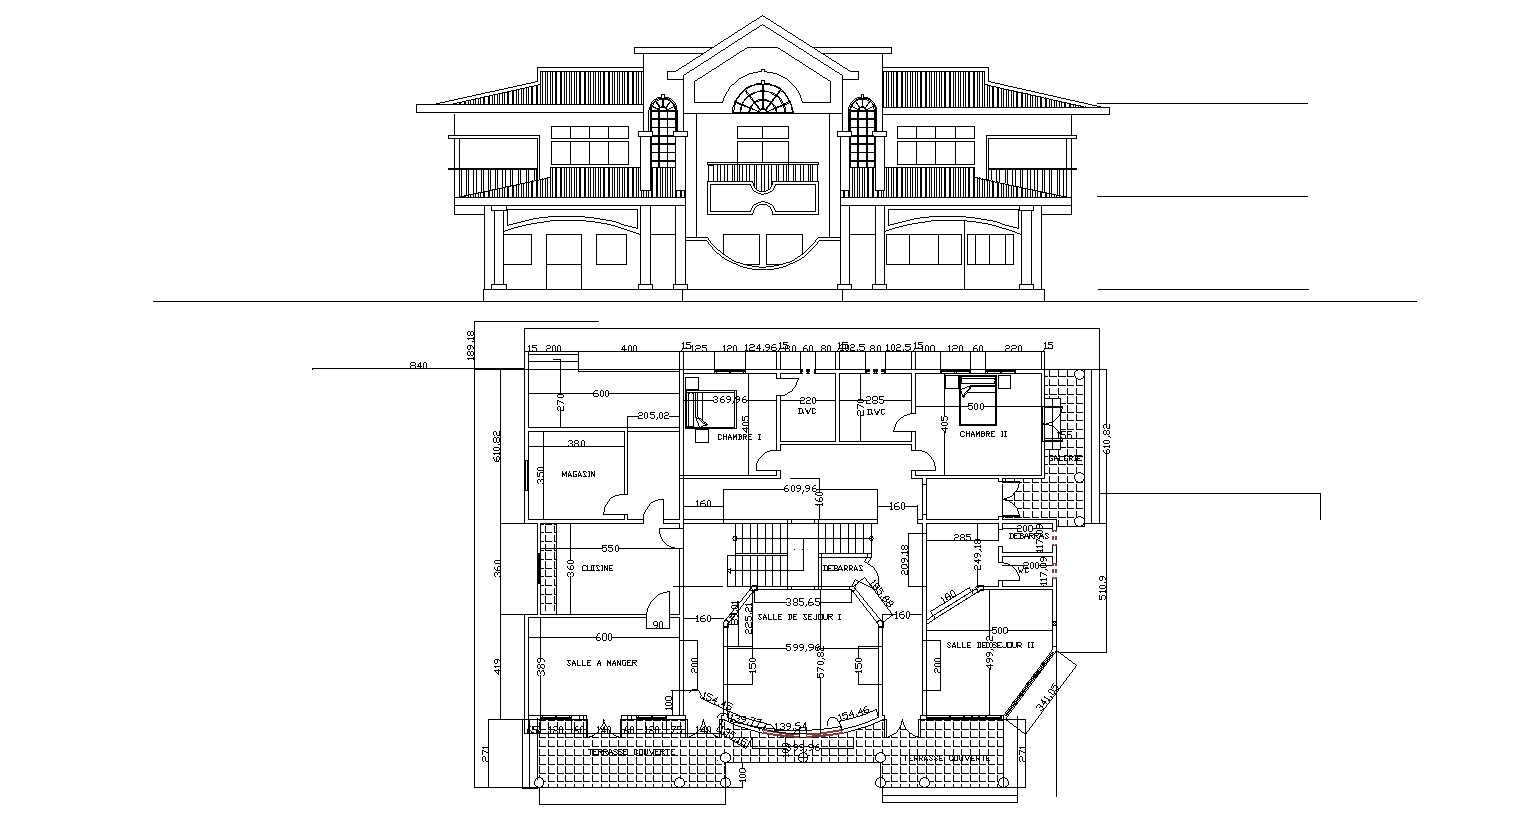 Architectural Design of Villa with Elevation in dwg file